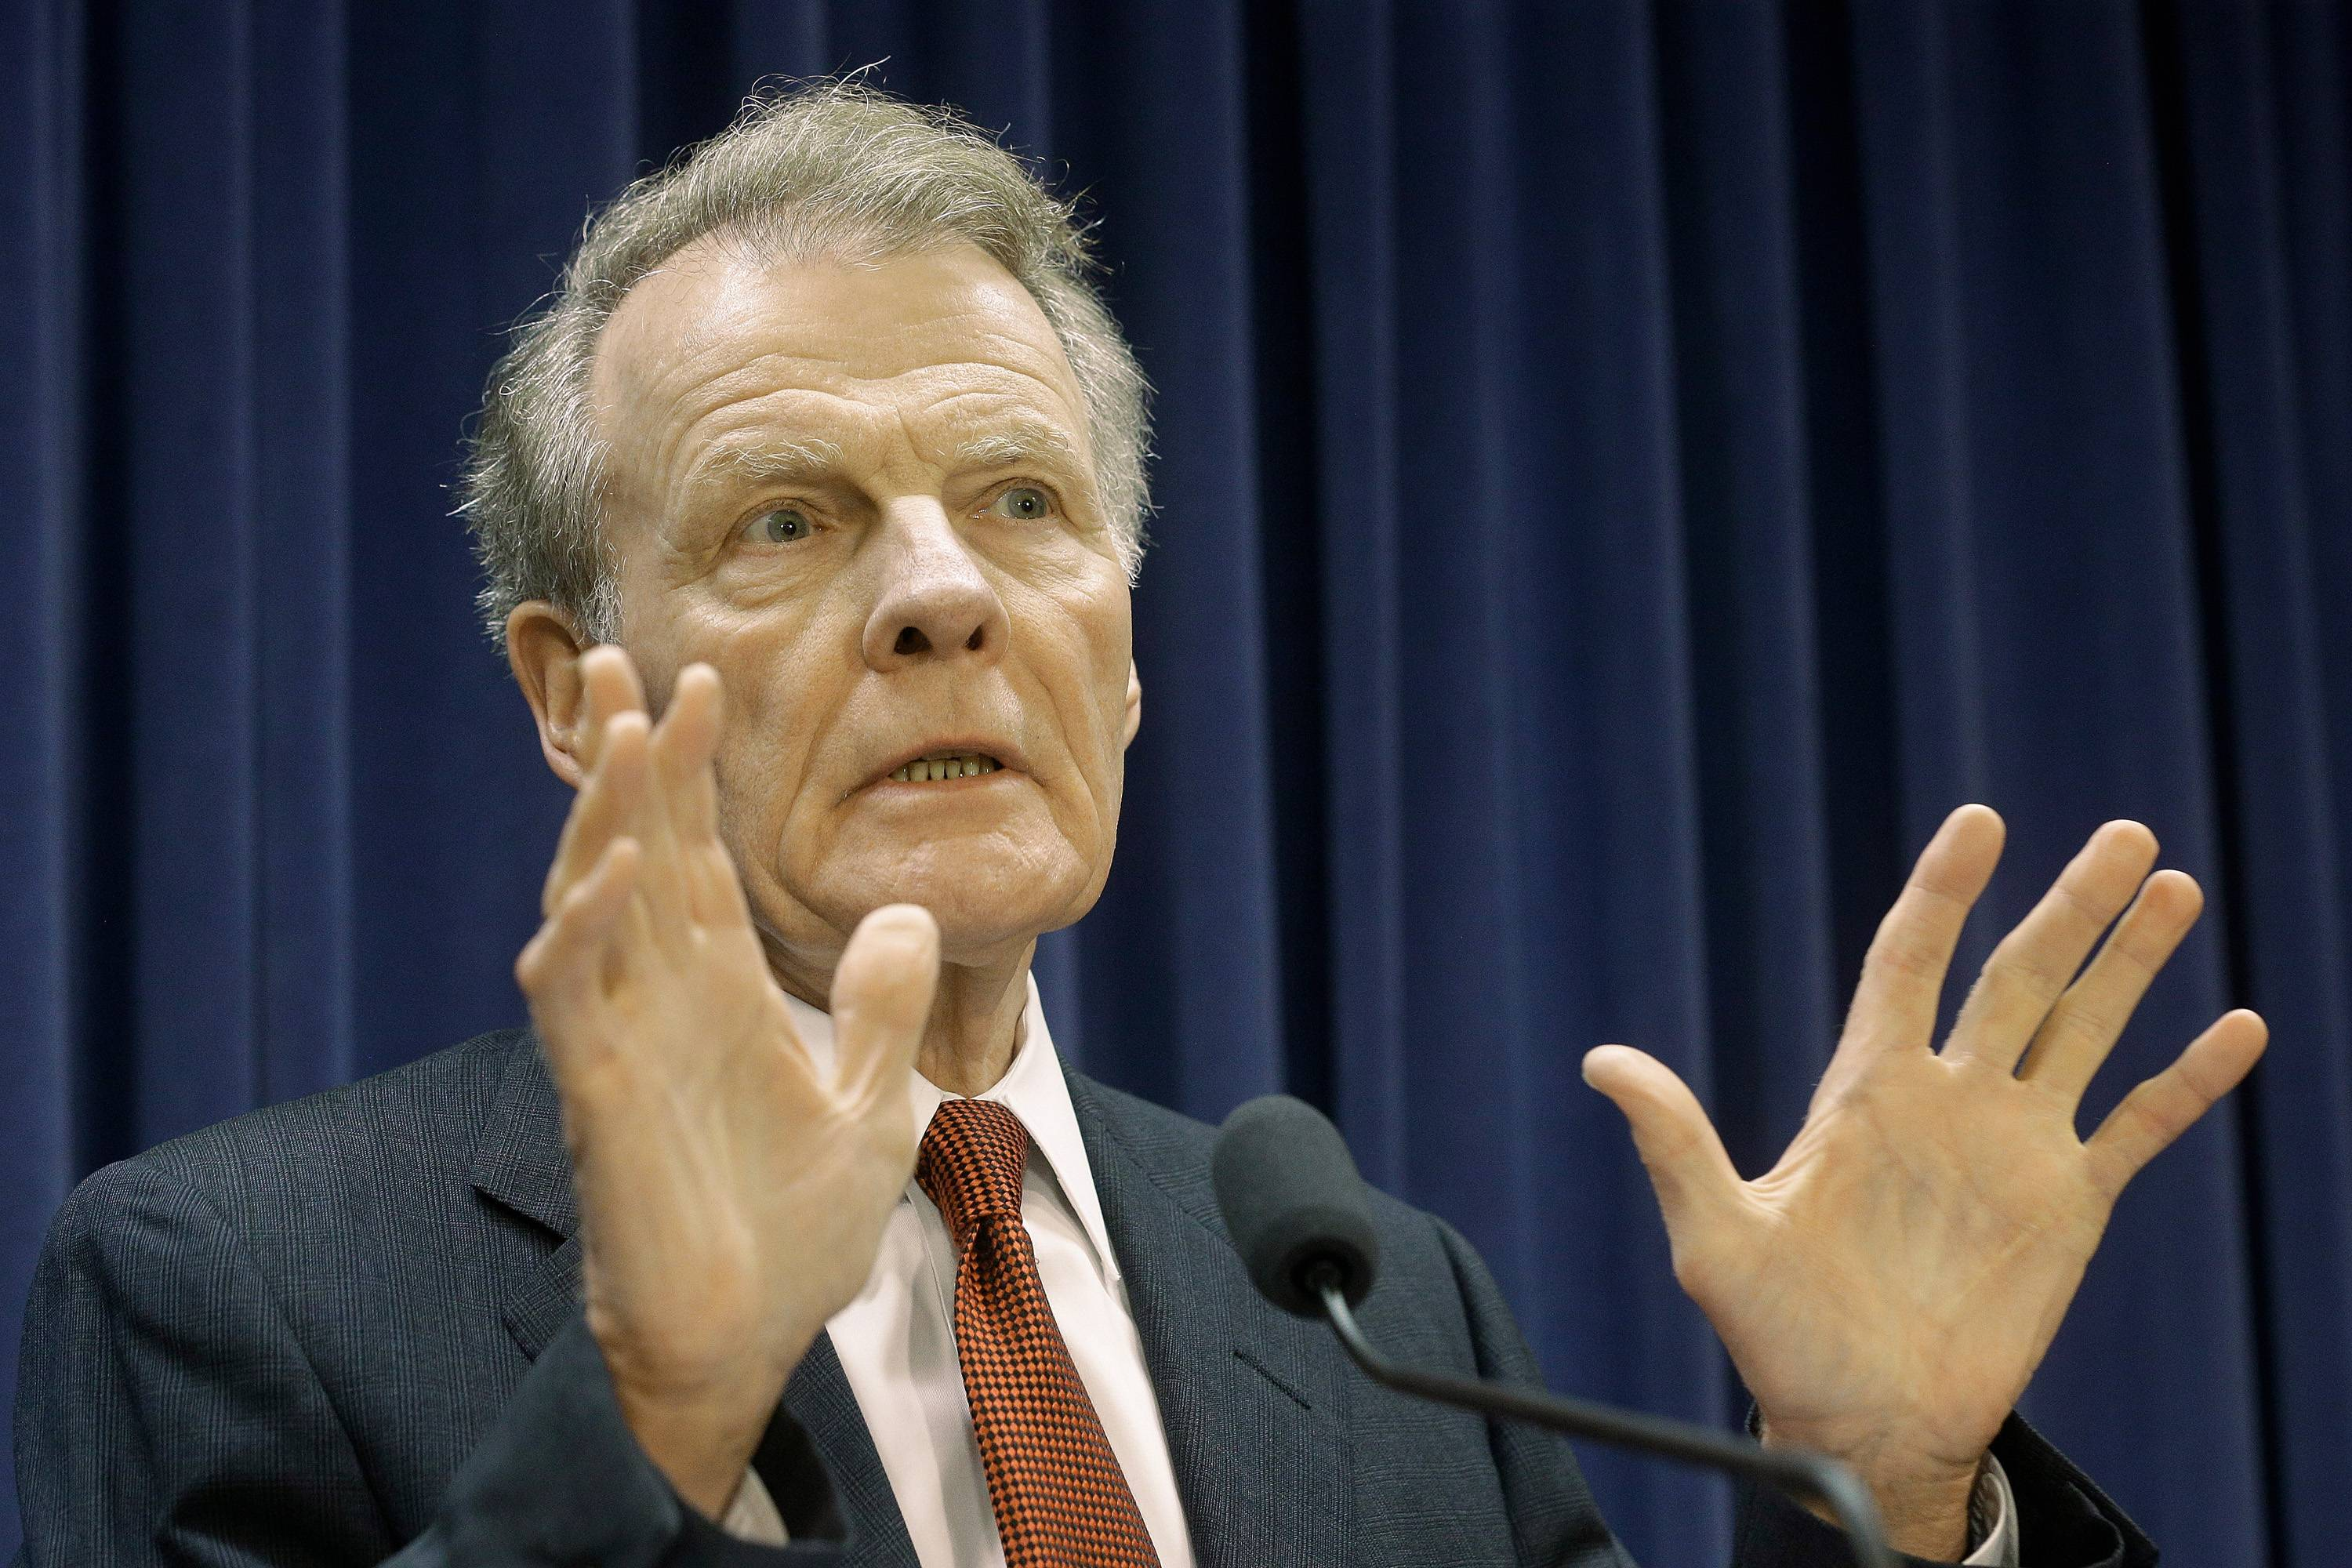 Illinois House Speaker Michael Madigan filed legislation that would block a controversial pay raise for lawmakers.